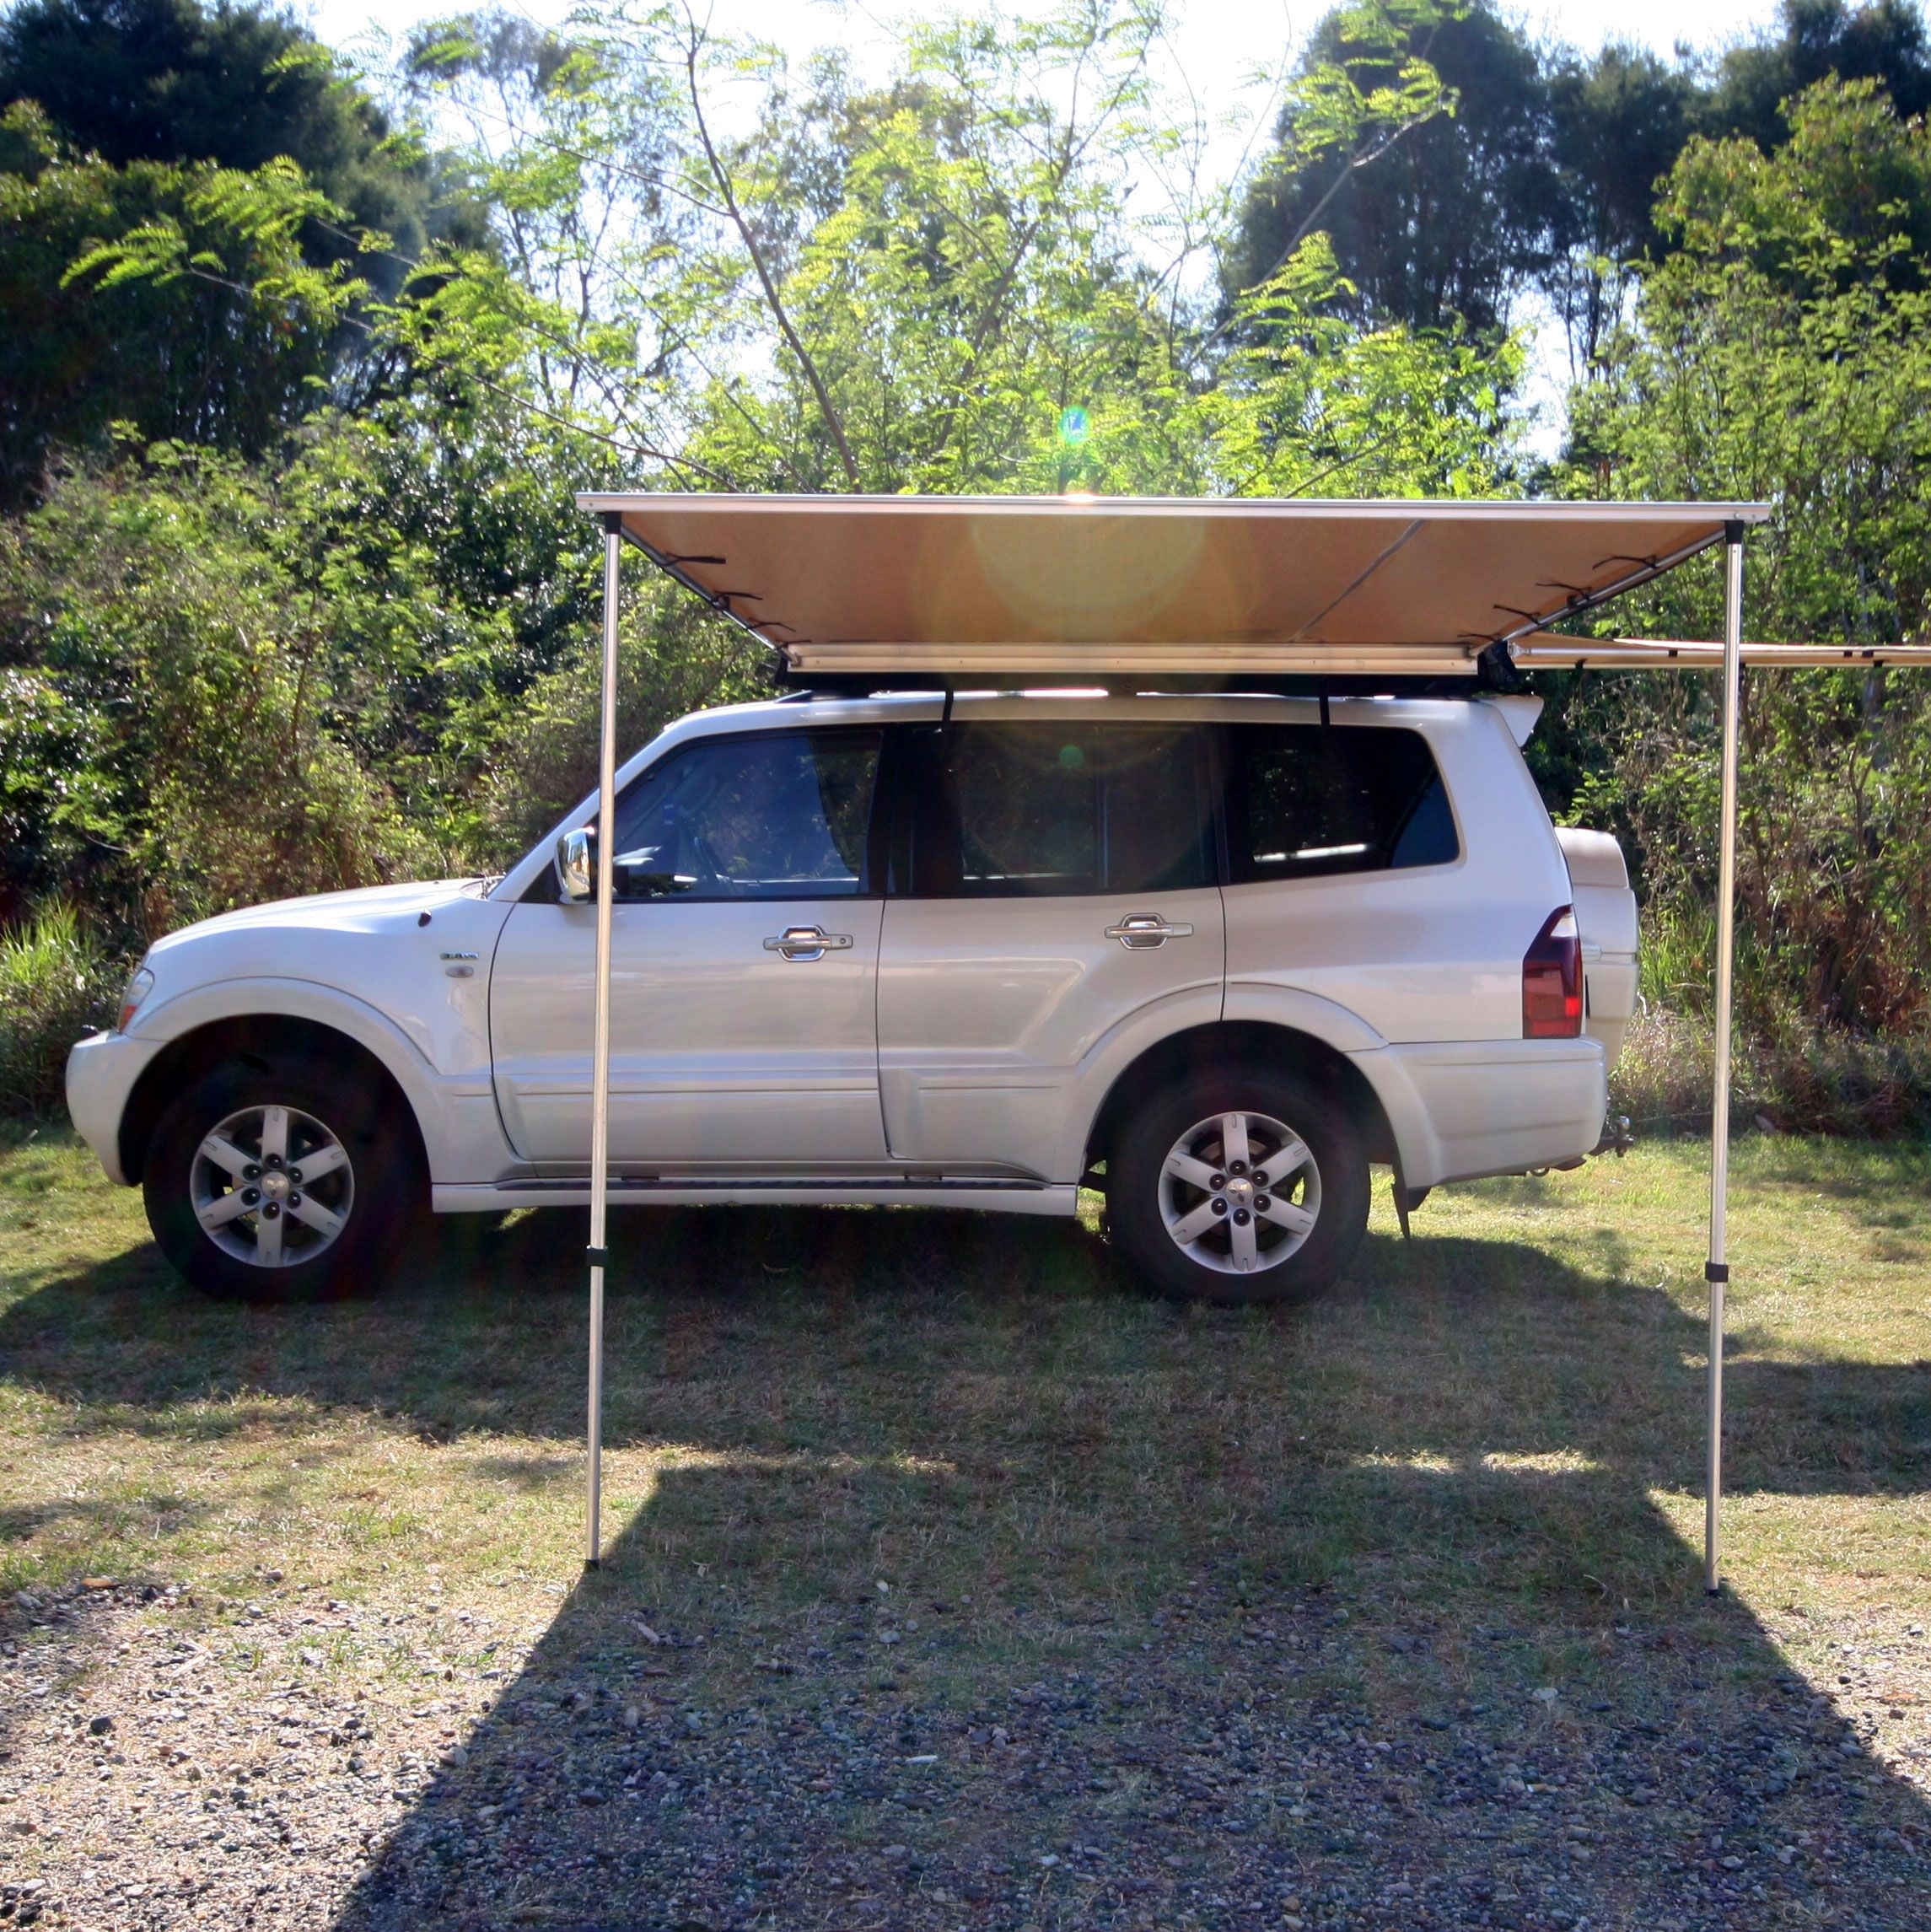 4Wd Supacentre Roof Rack Installation tough side awning 2x3m | 4wd accessories | 4x4 accessories